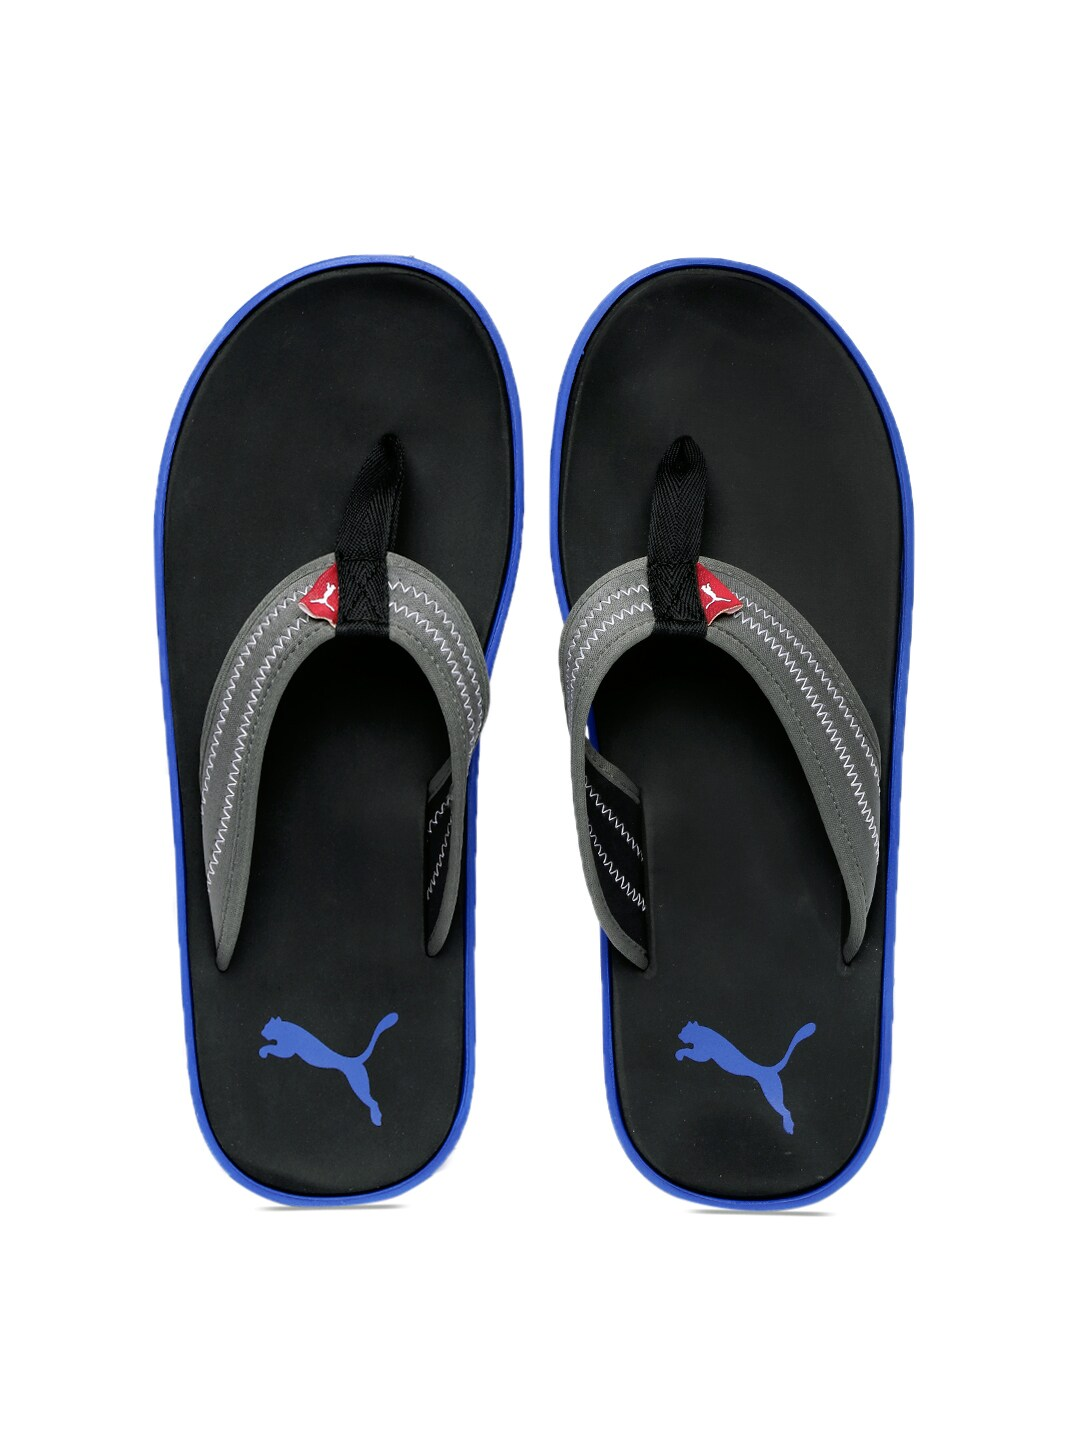 2737e8bbd30 Puma Slippers - Buy Puma Slippers Online at Best Price